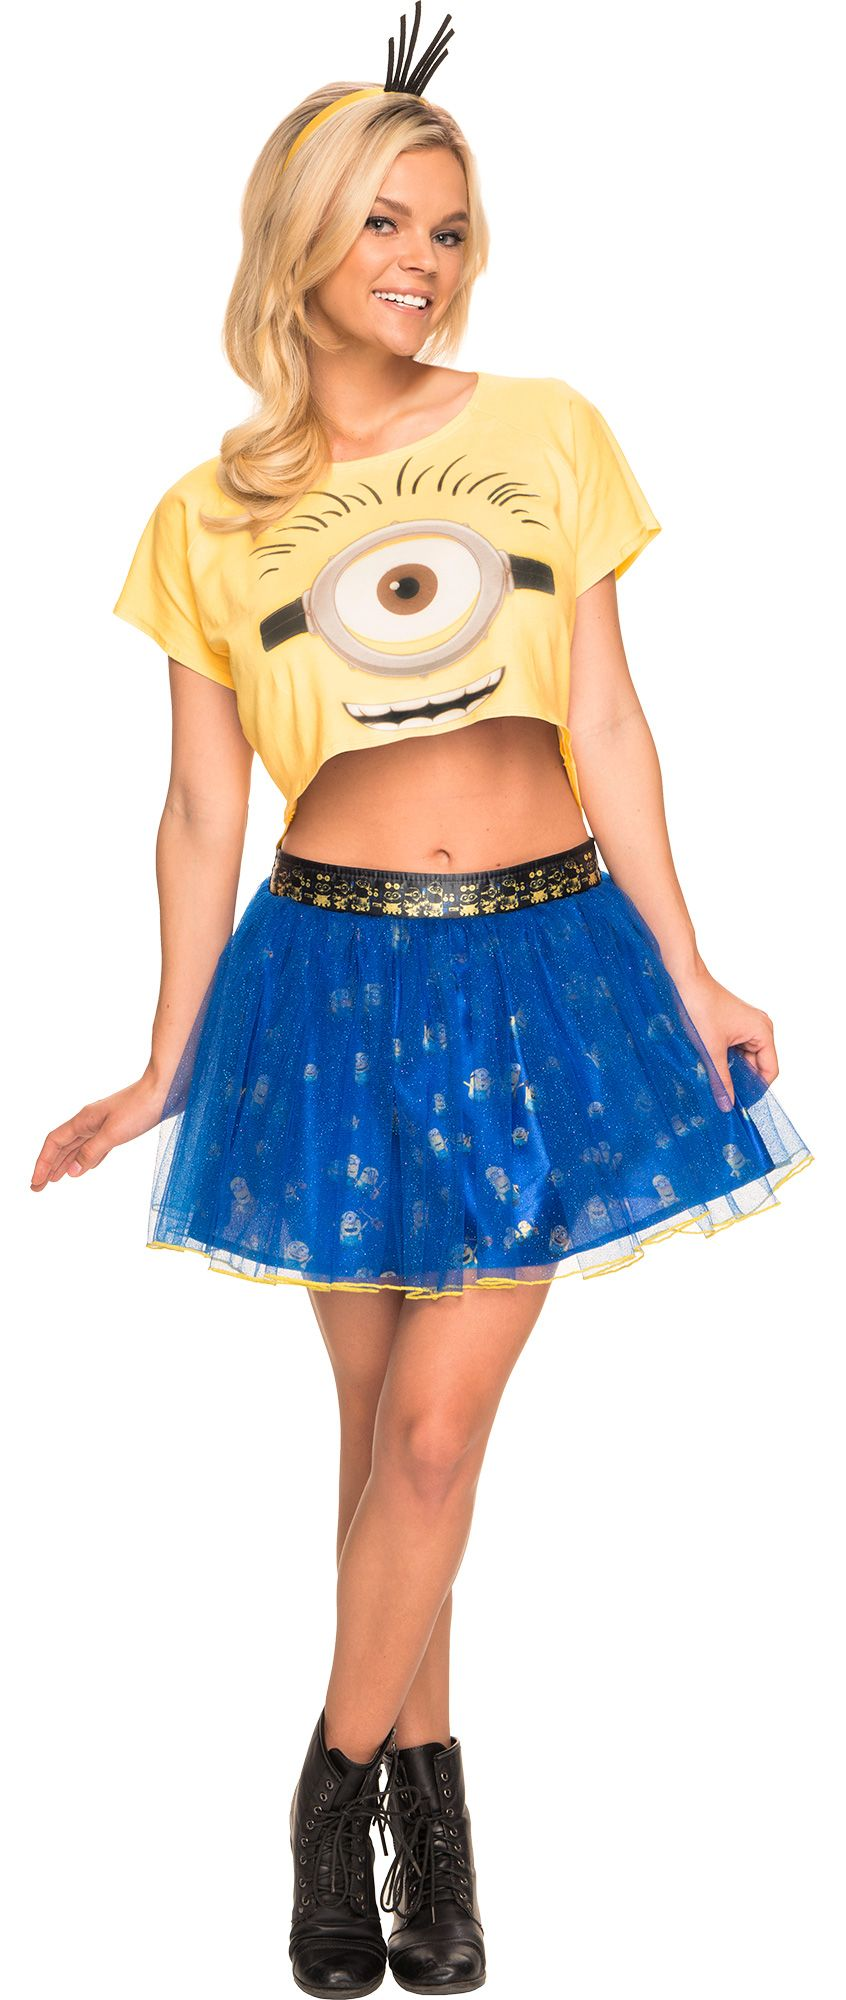 Make Your Costume - Womens Minion #1